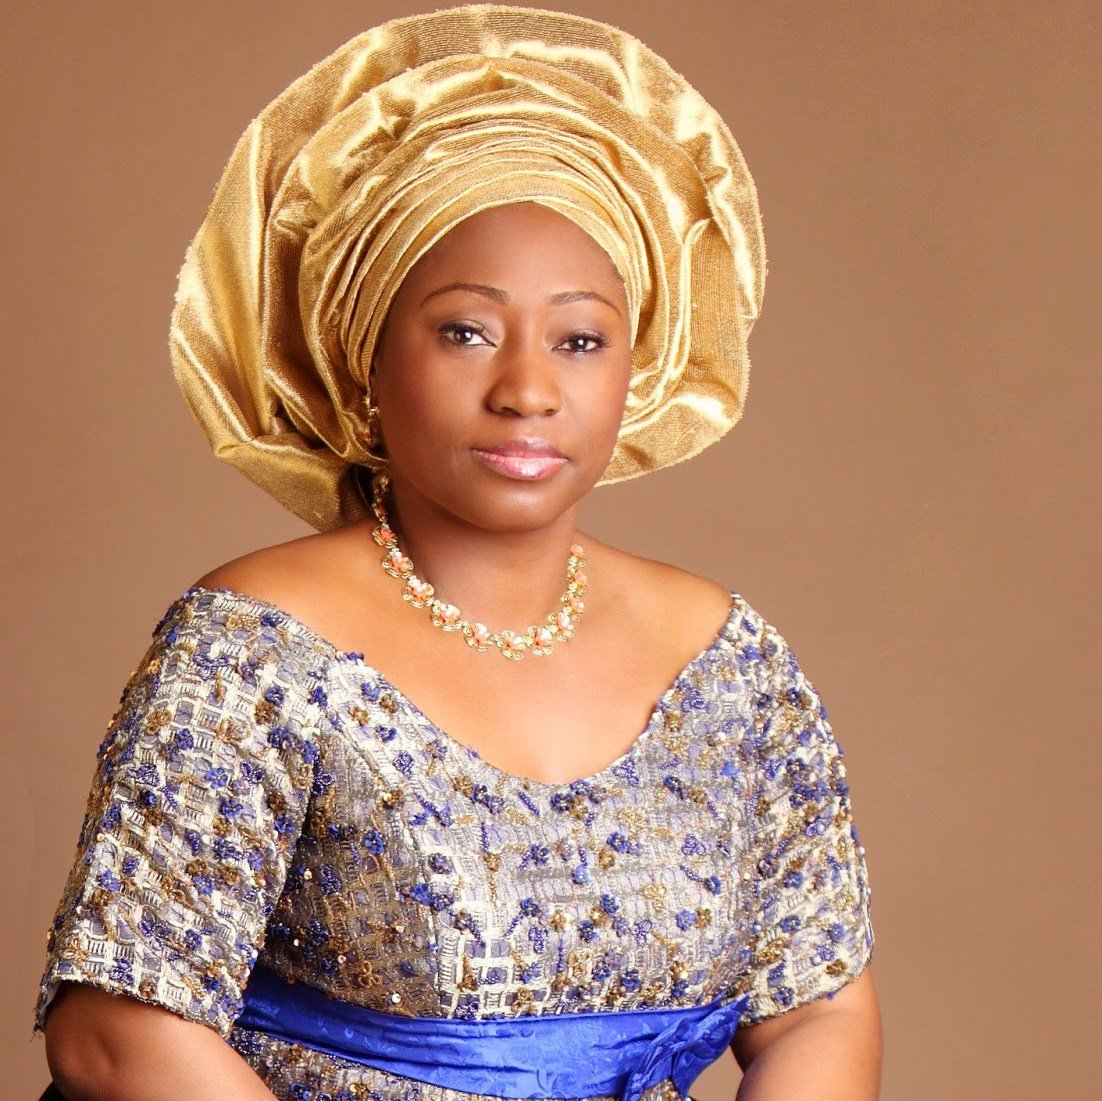 It's discriminatory to expel pregnant girls from school and leave the boys - Ekiti state First Lady